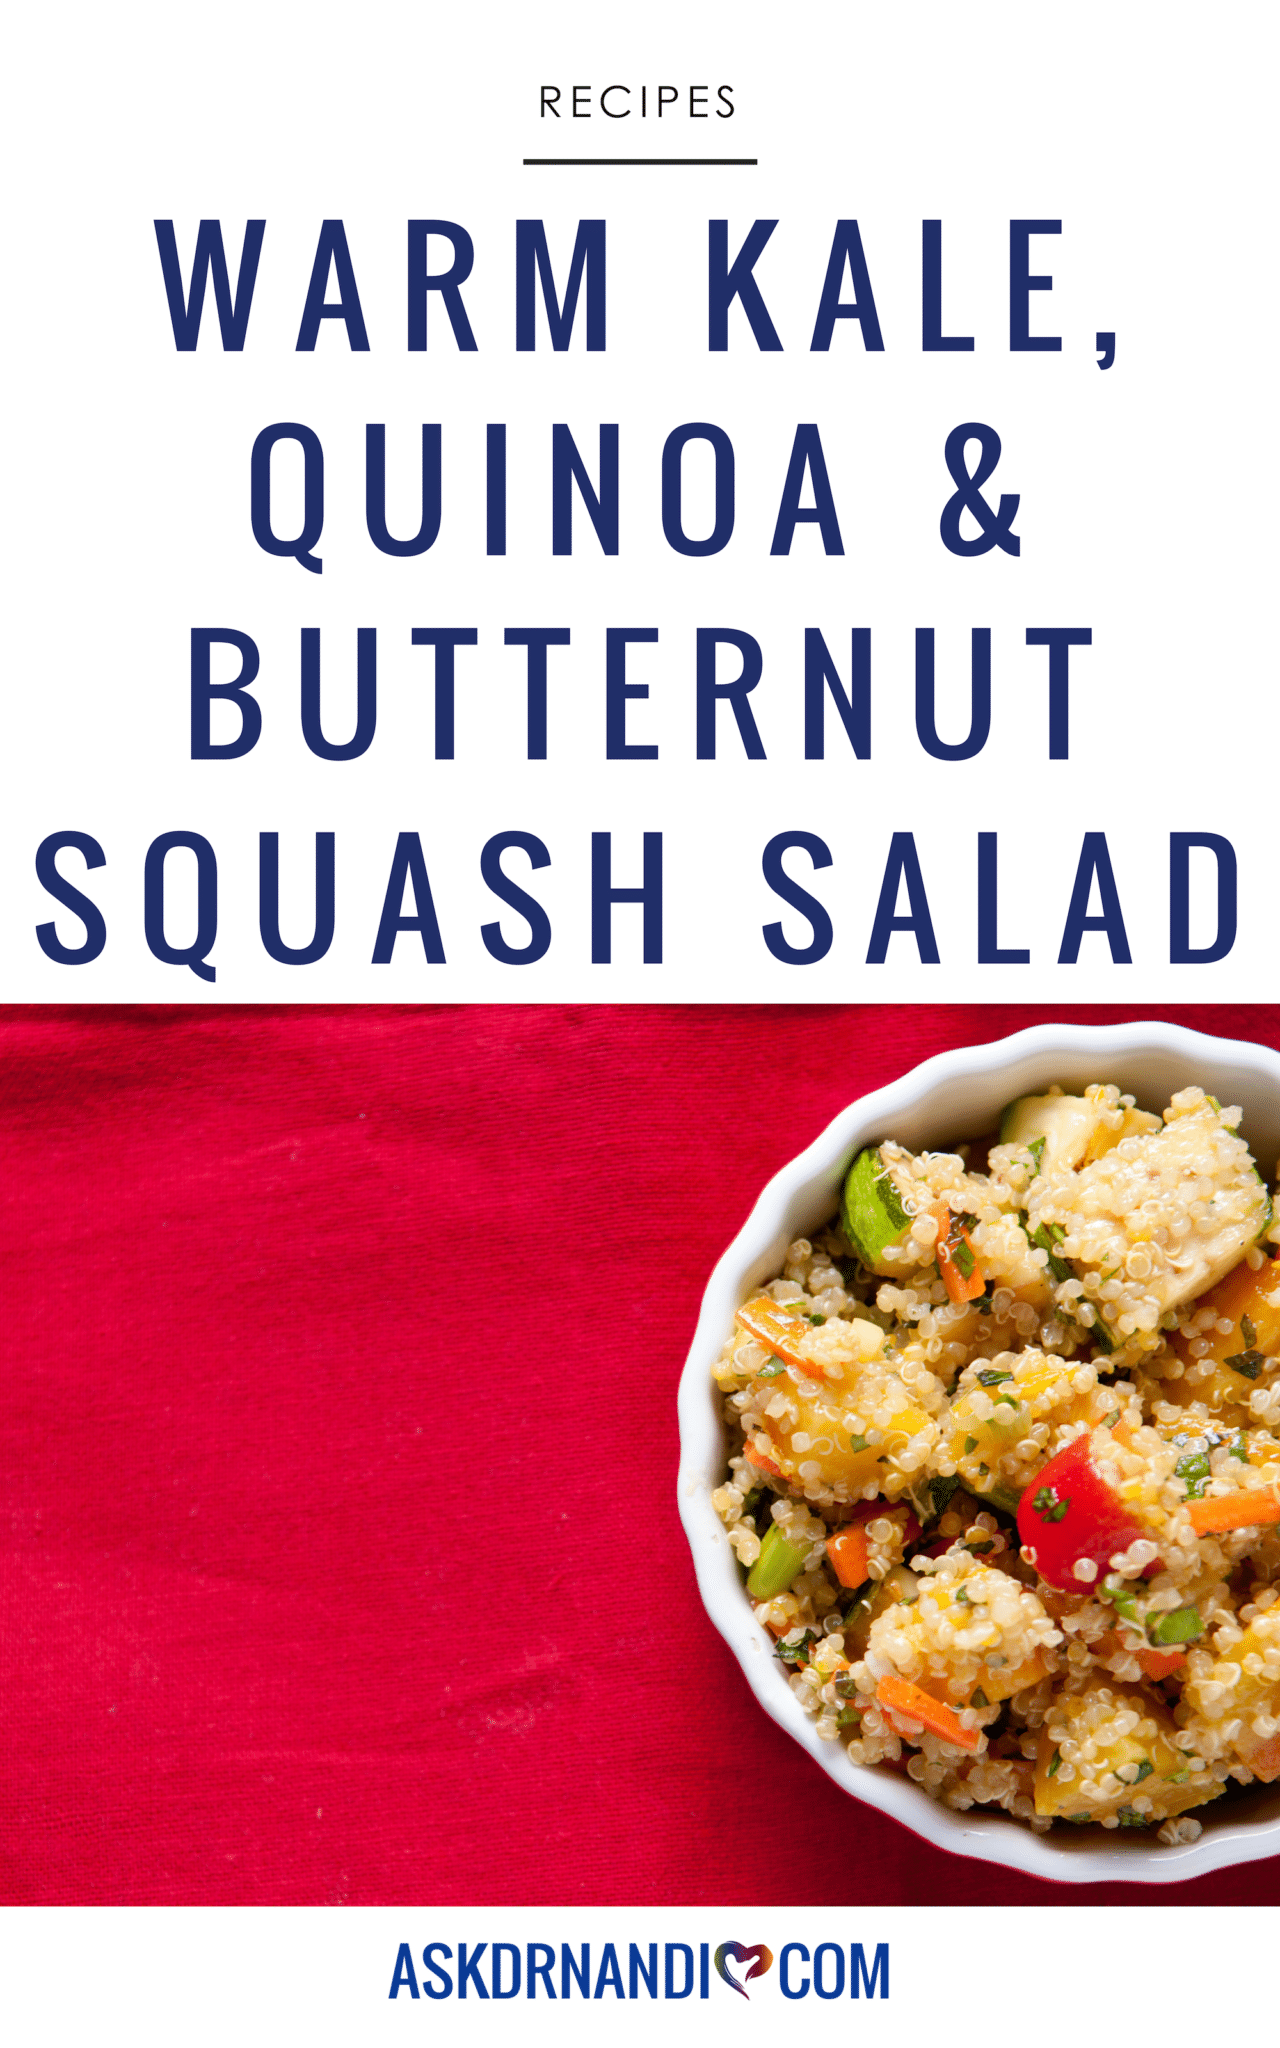 This Warm Kale, Quinoa & Butternut Squash Salad recipe is delcious, quick and easy to make!